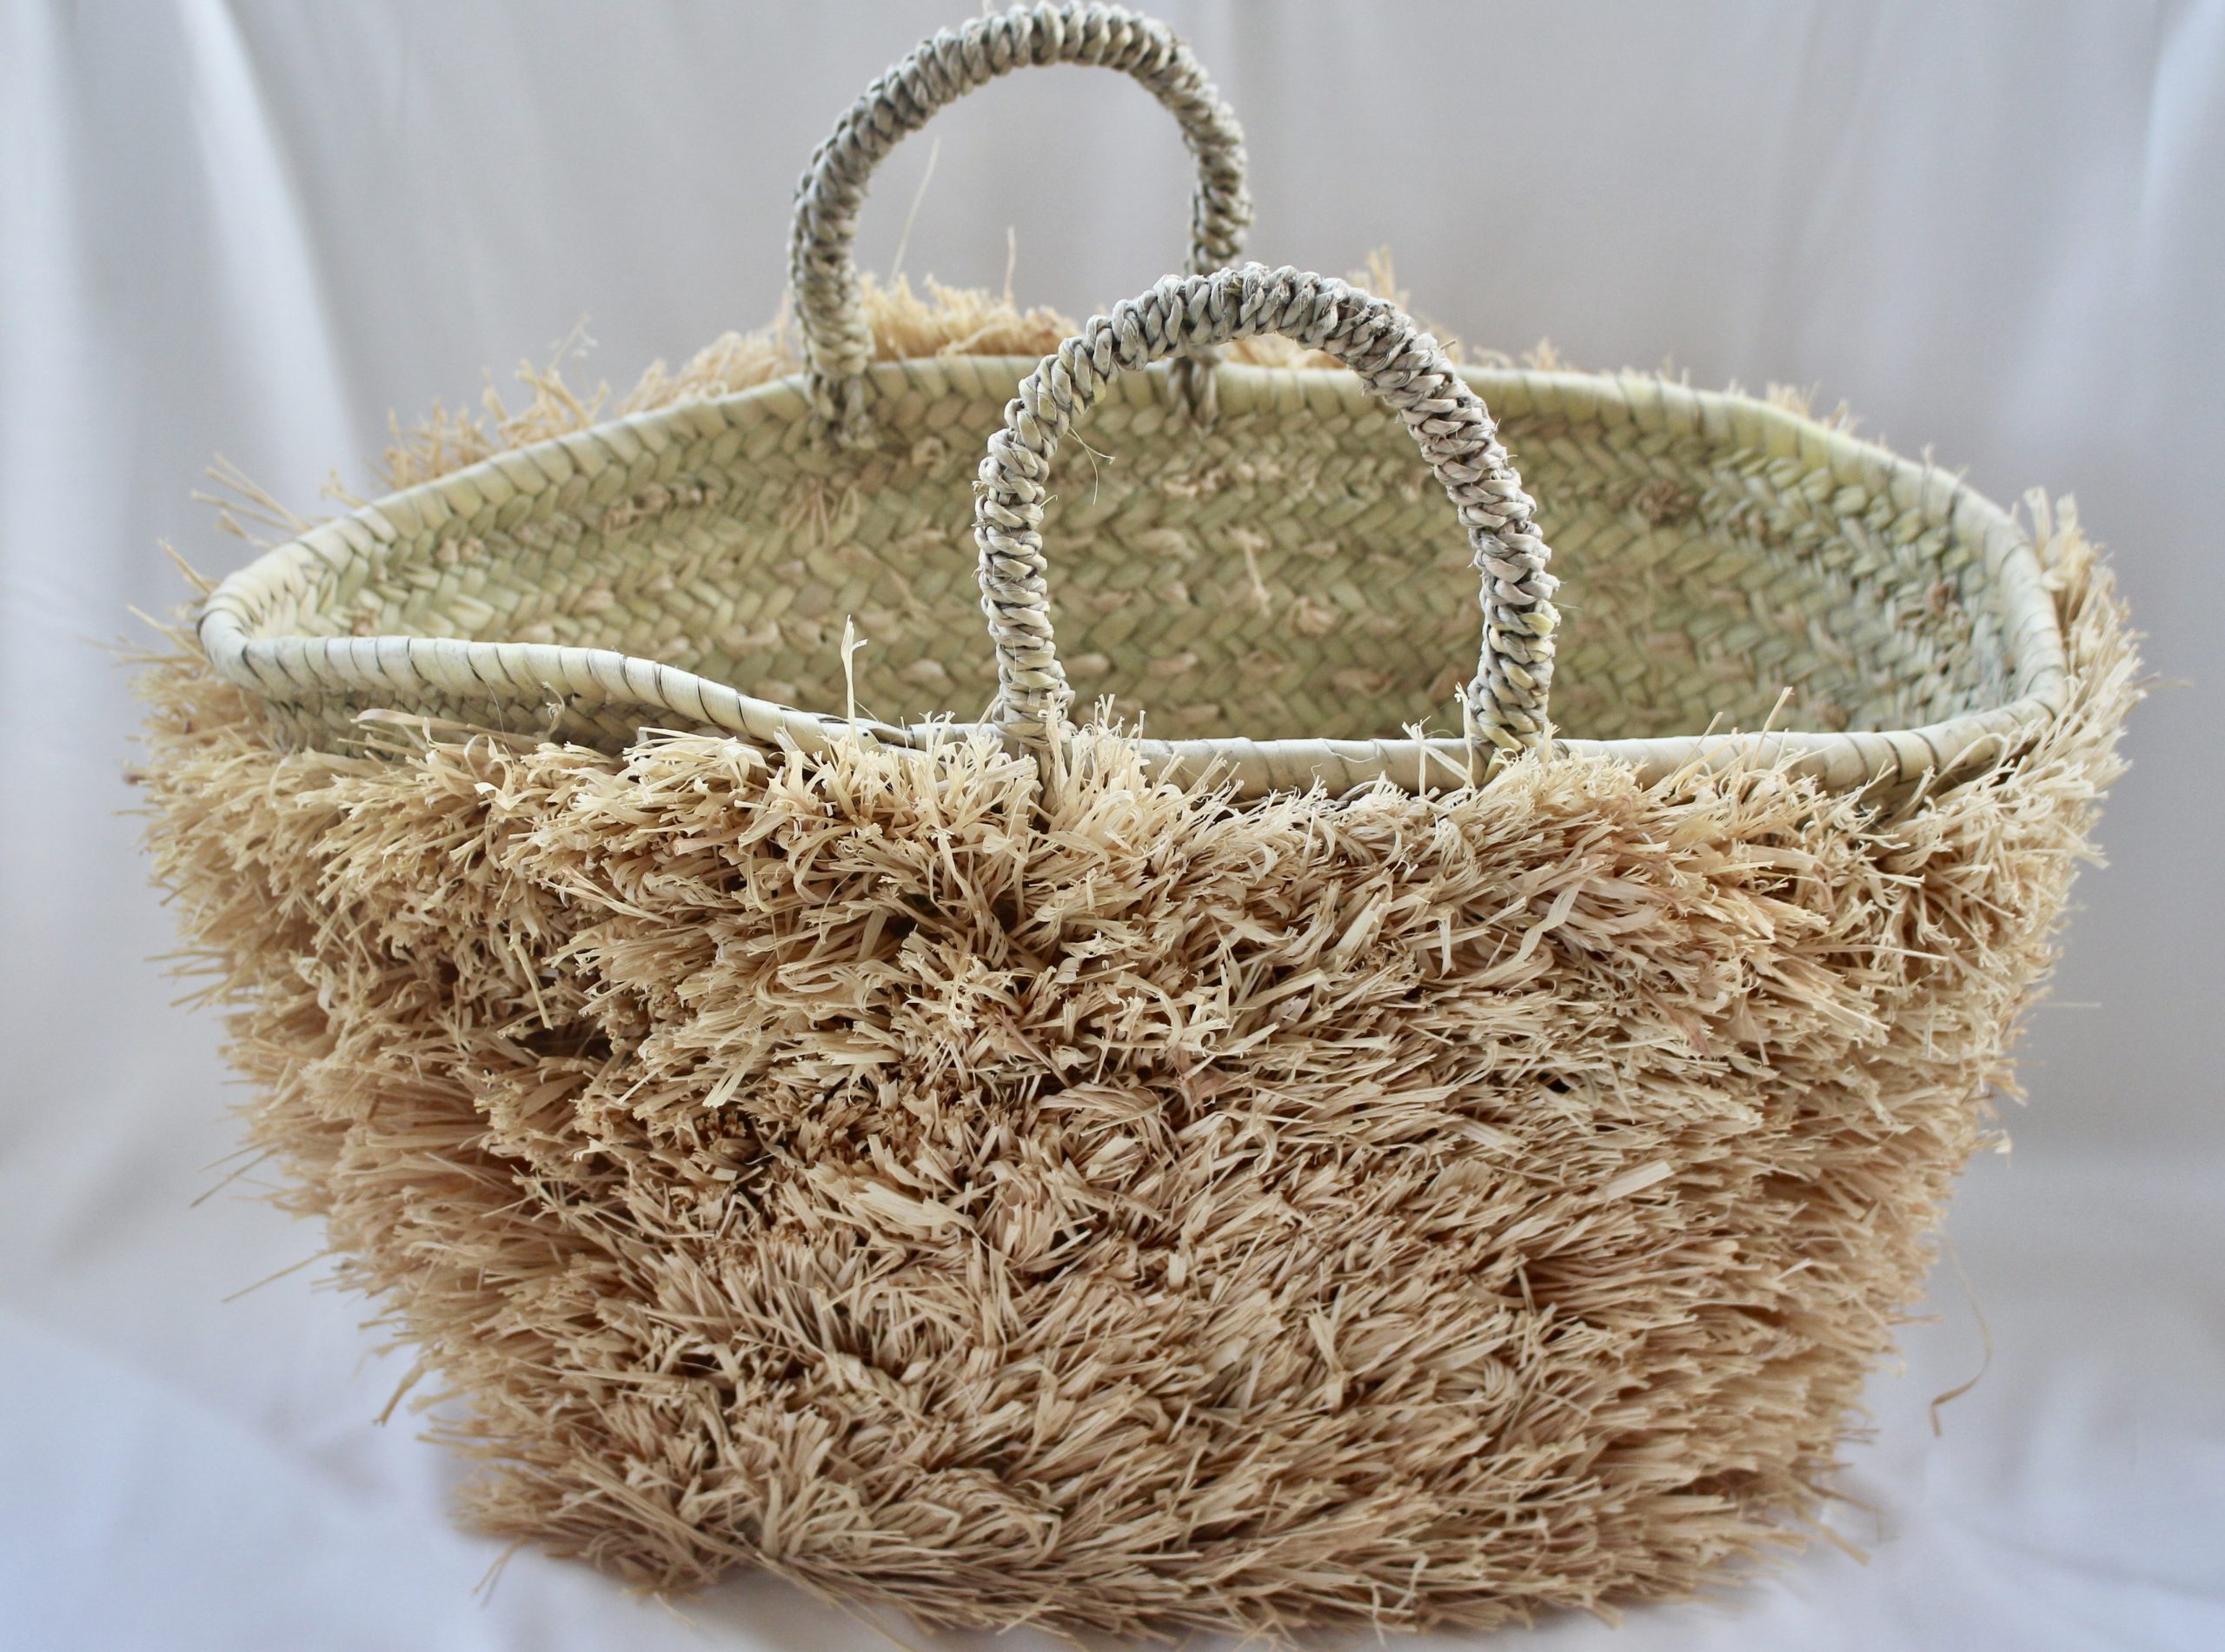 Fluffy Wicker Basket